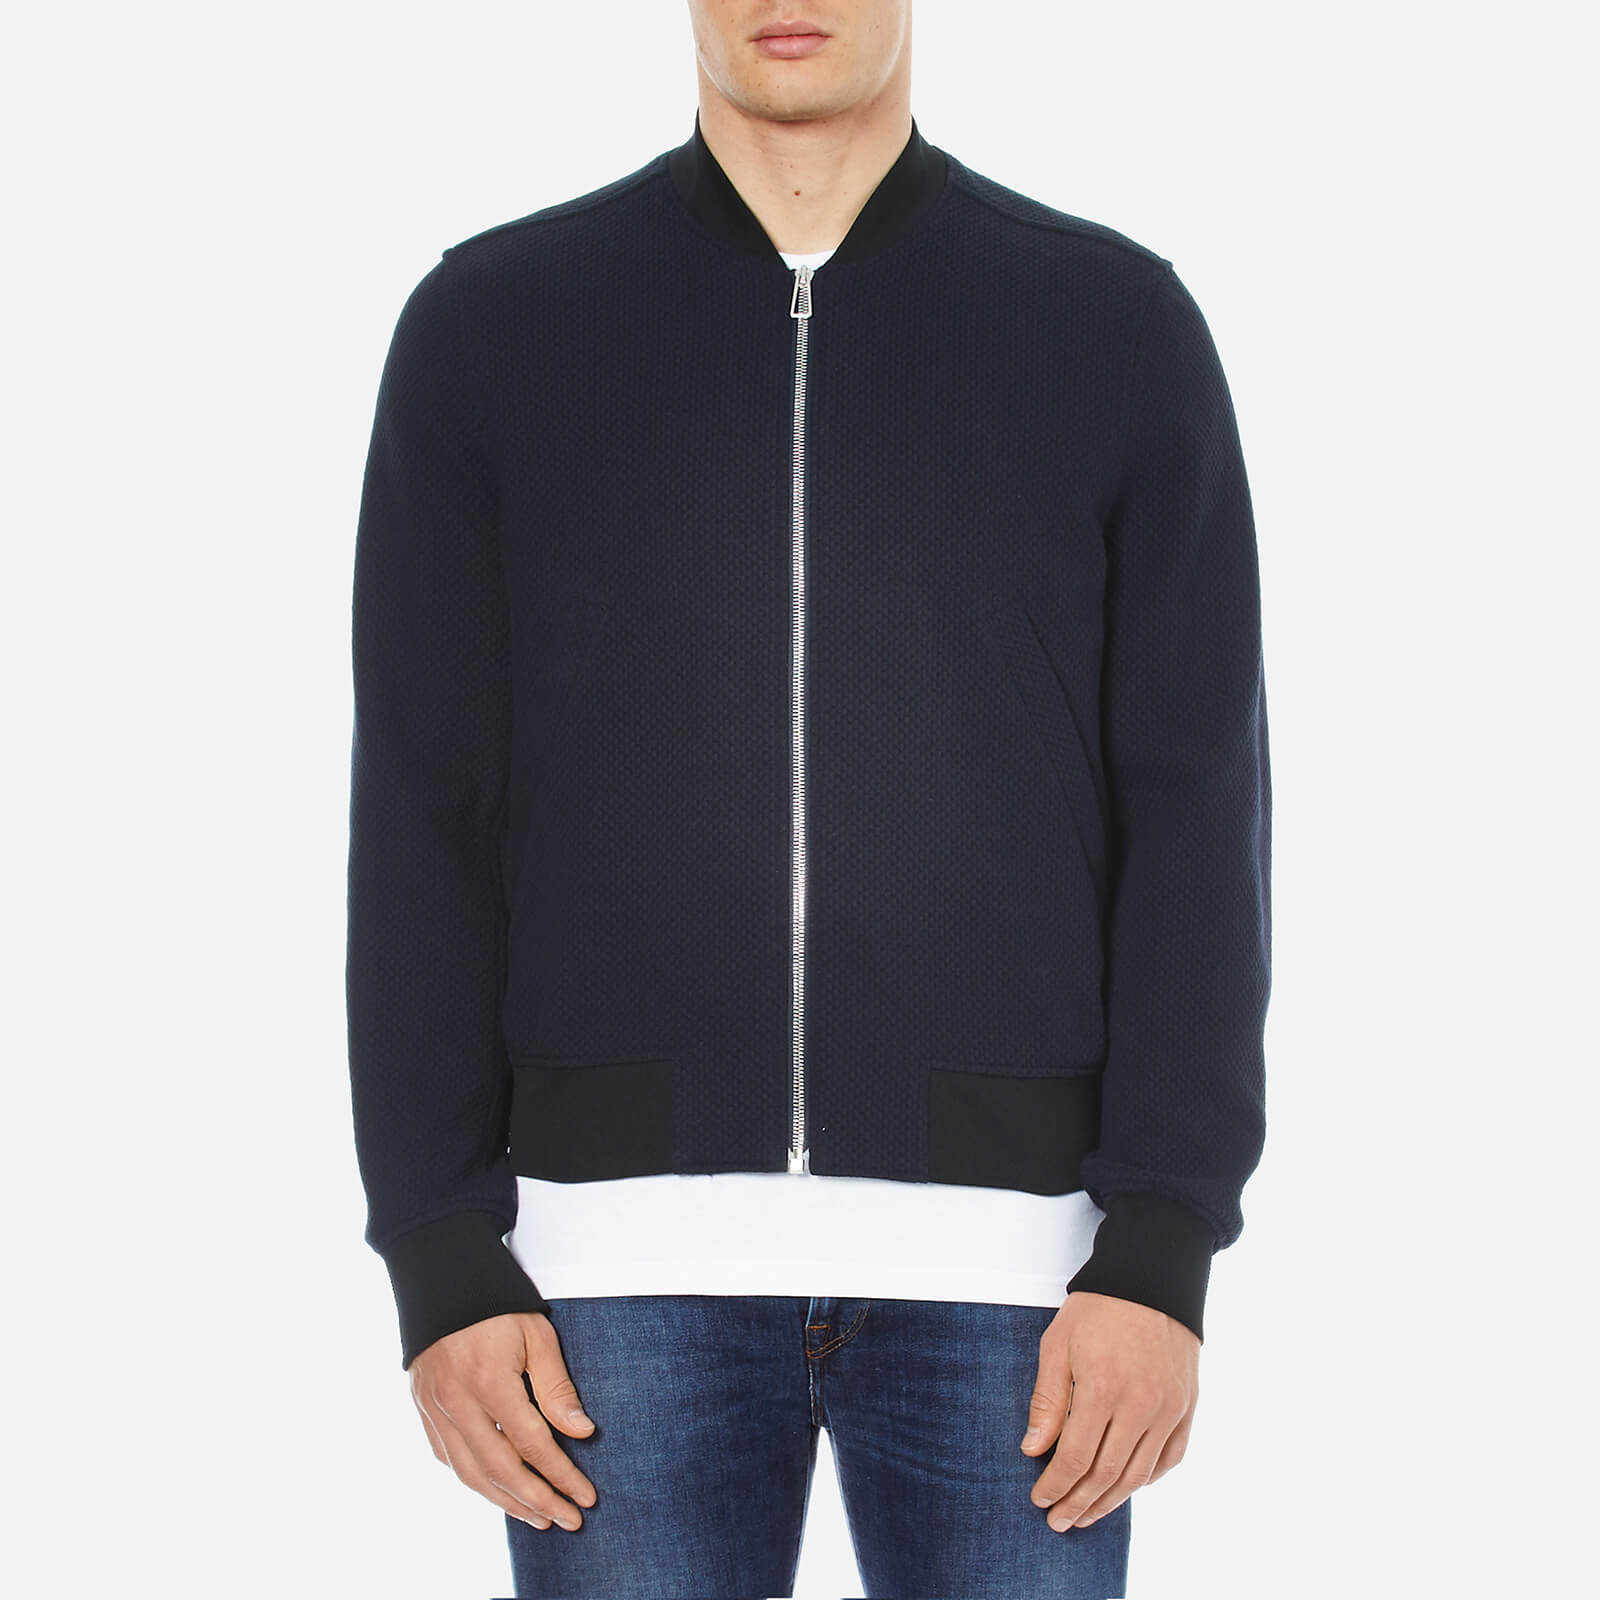 68a87261f75 PS by Paul Smith Men s Textured Bomber Jacket - Navy - Free UK Delivery  over £50